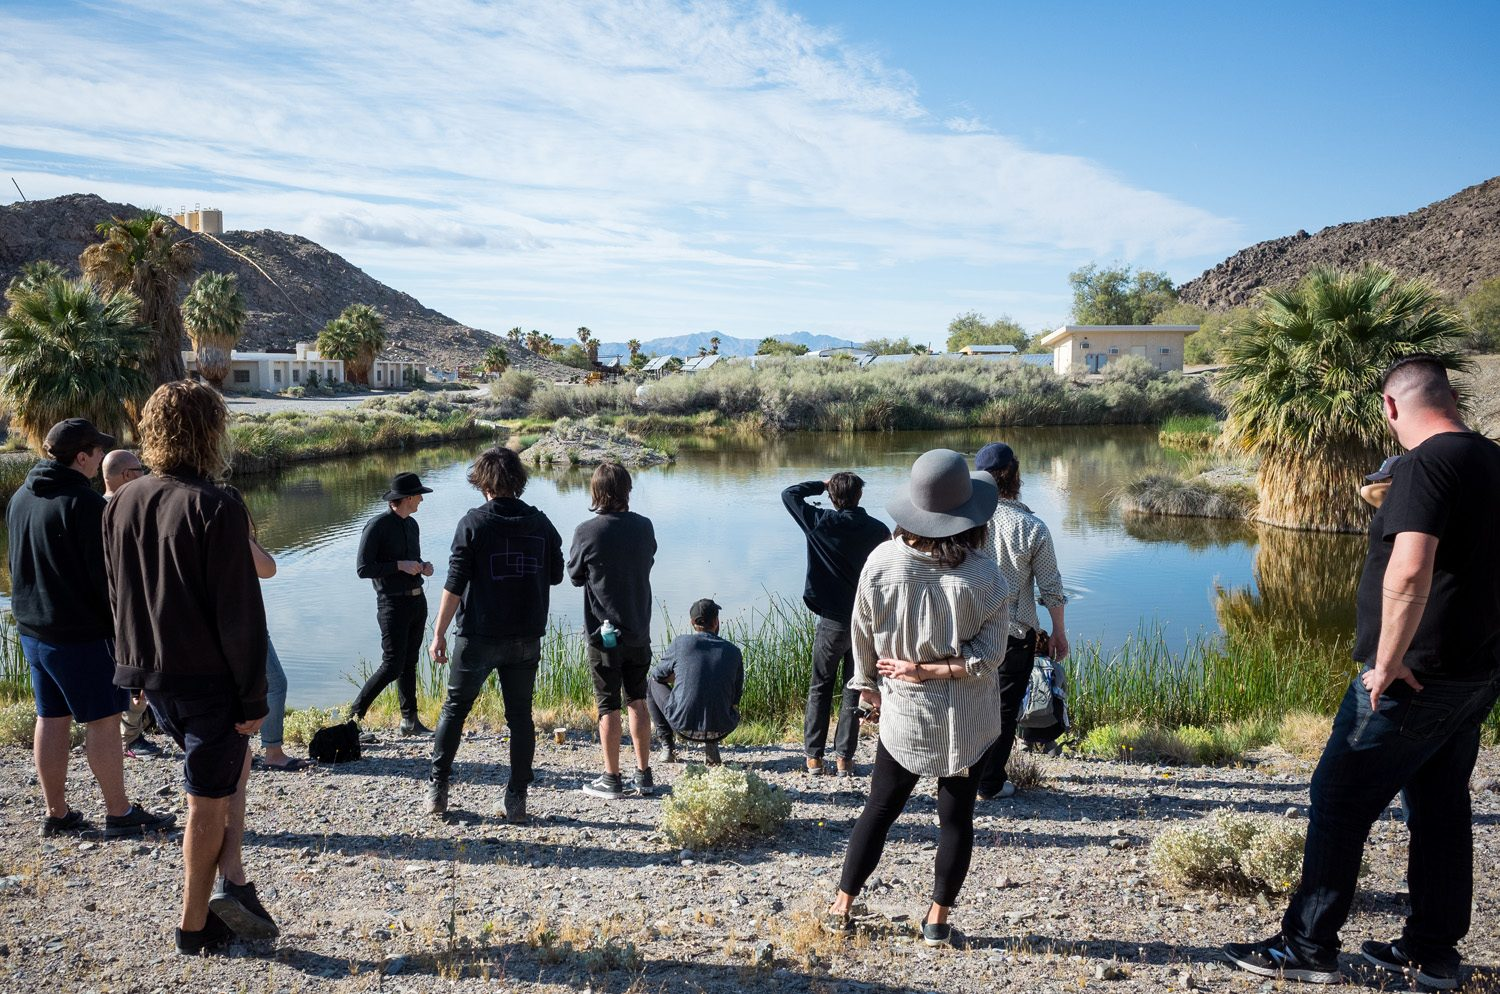 Desert Studies Center, Zzyzx, CA – Photo by Christopher Wormald